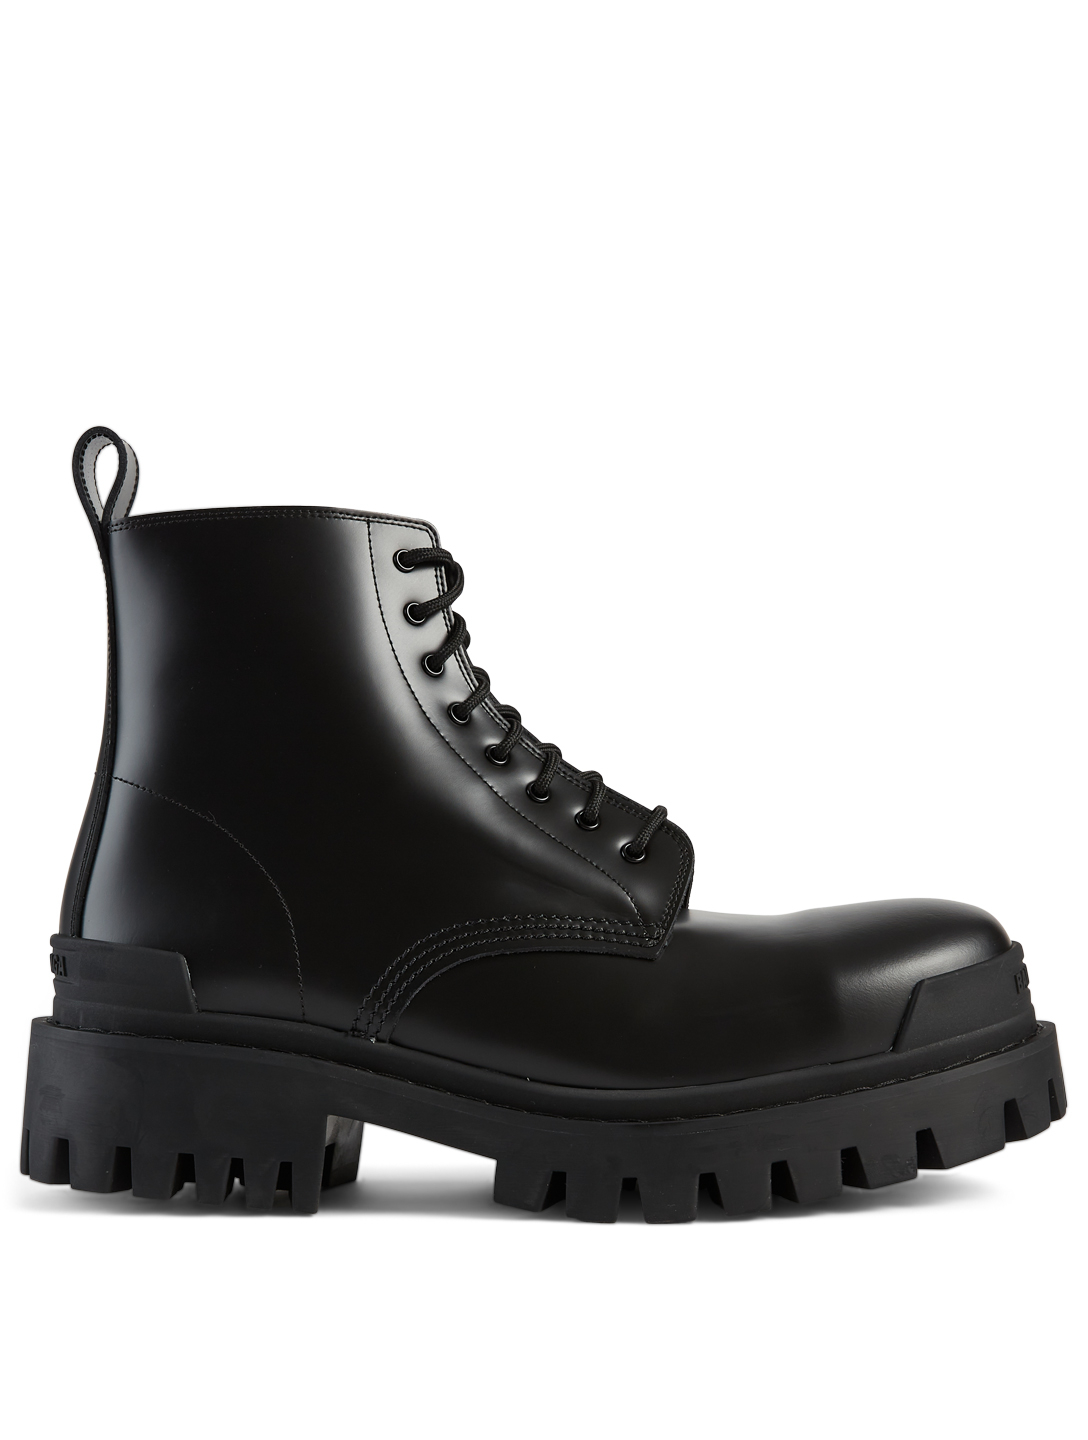 BALENCIAGA Strike Leather Lace-Up Ankle Boots Men's Black